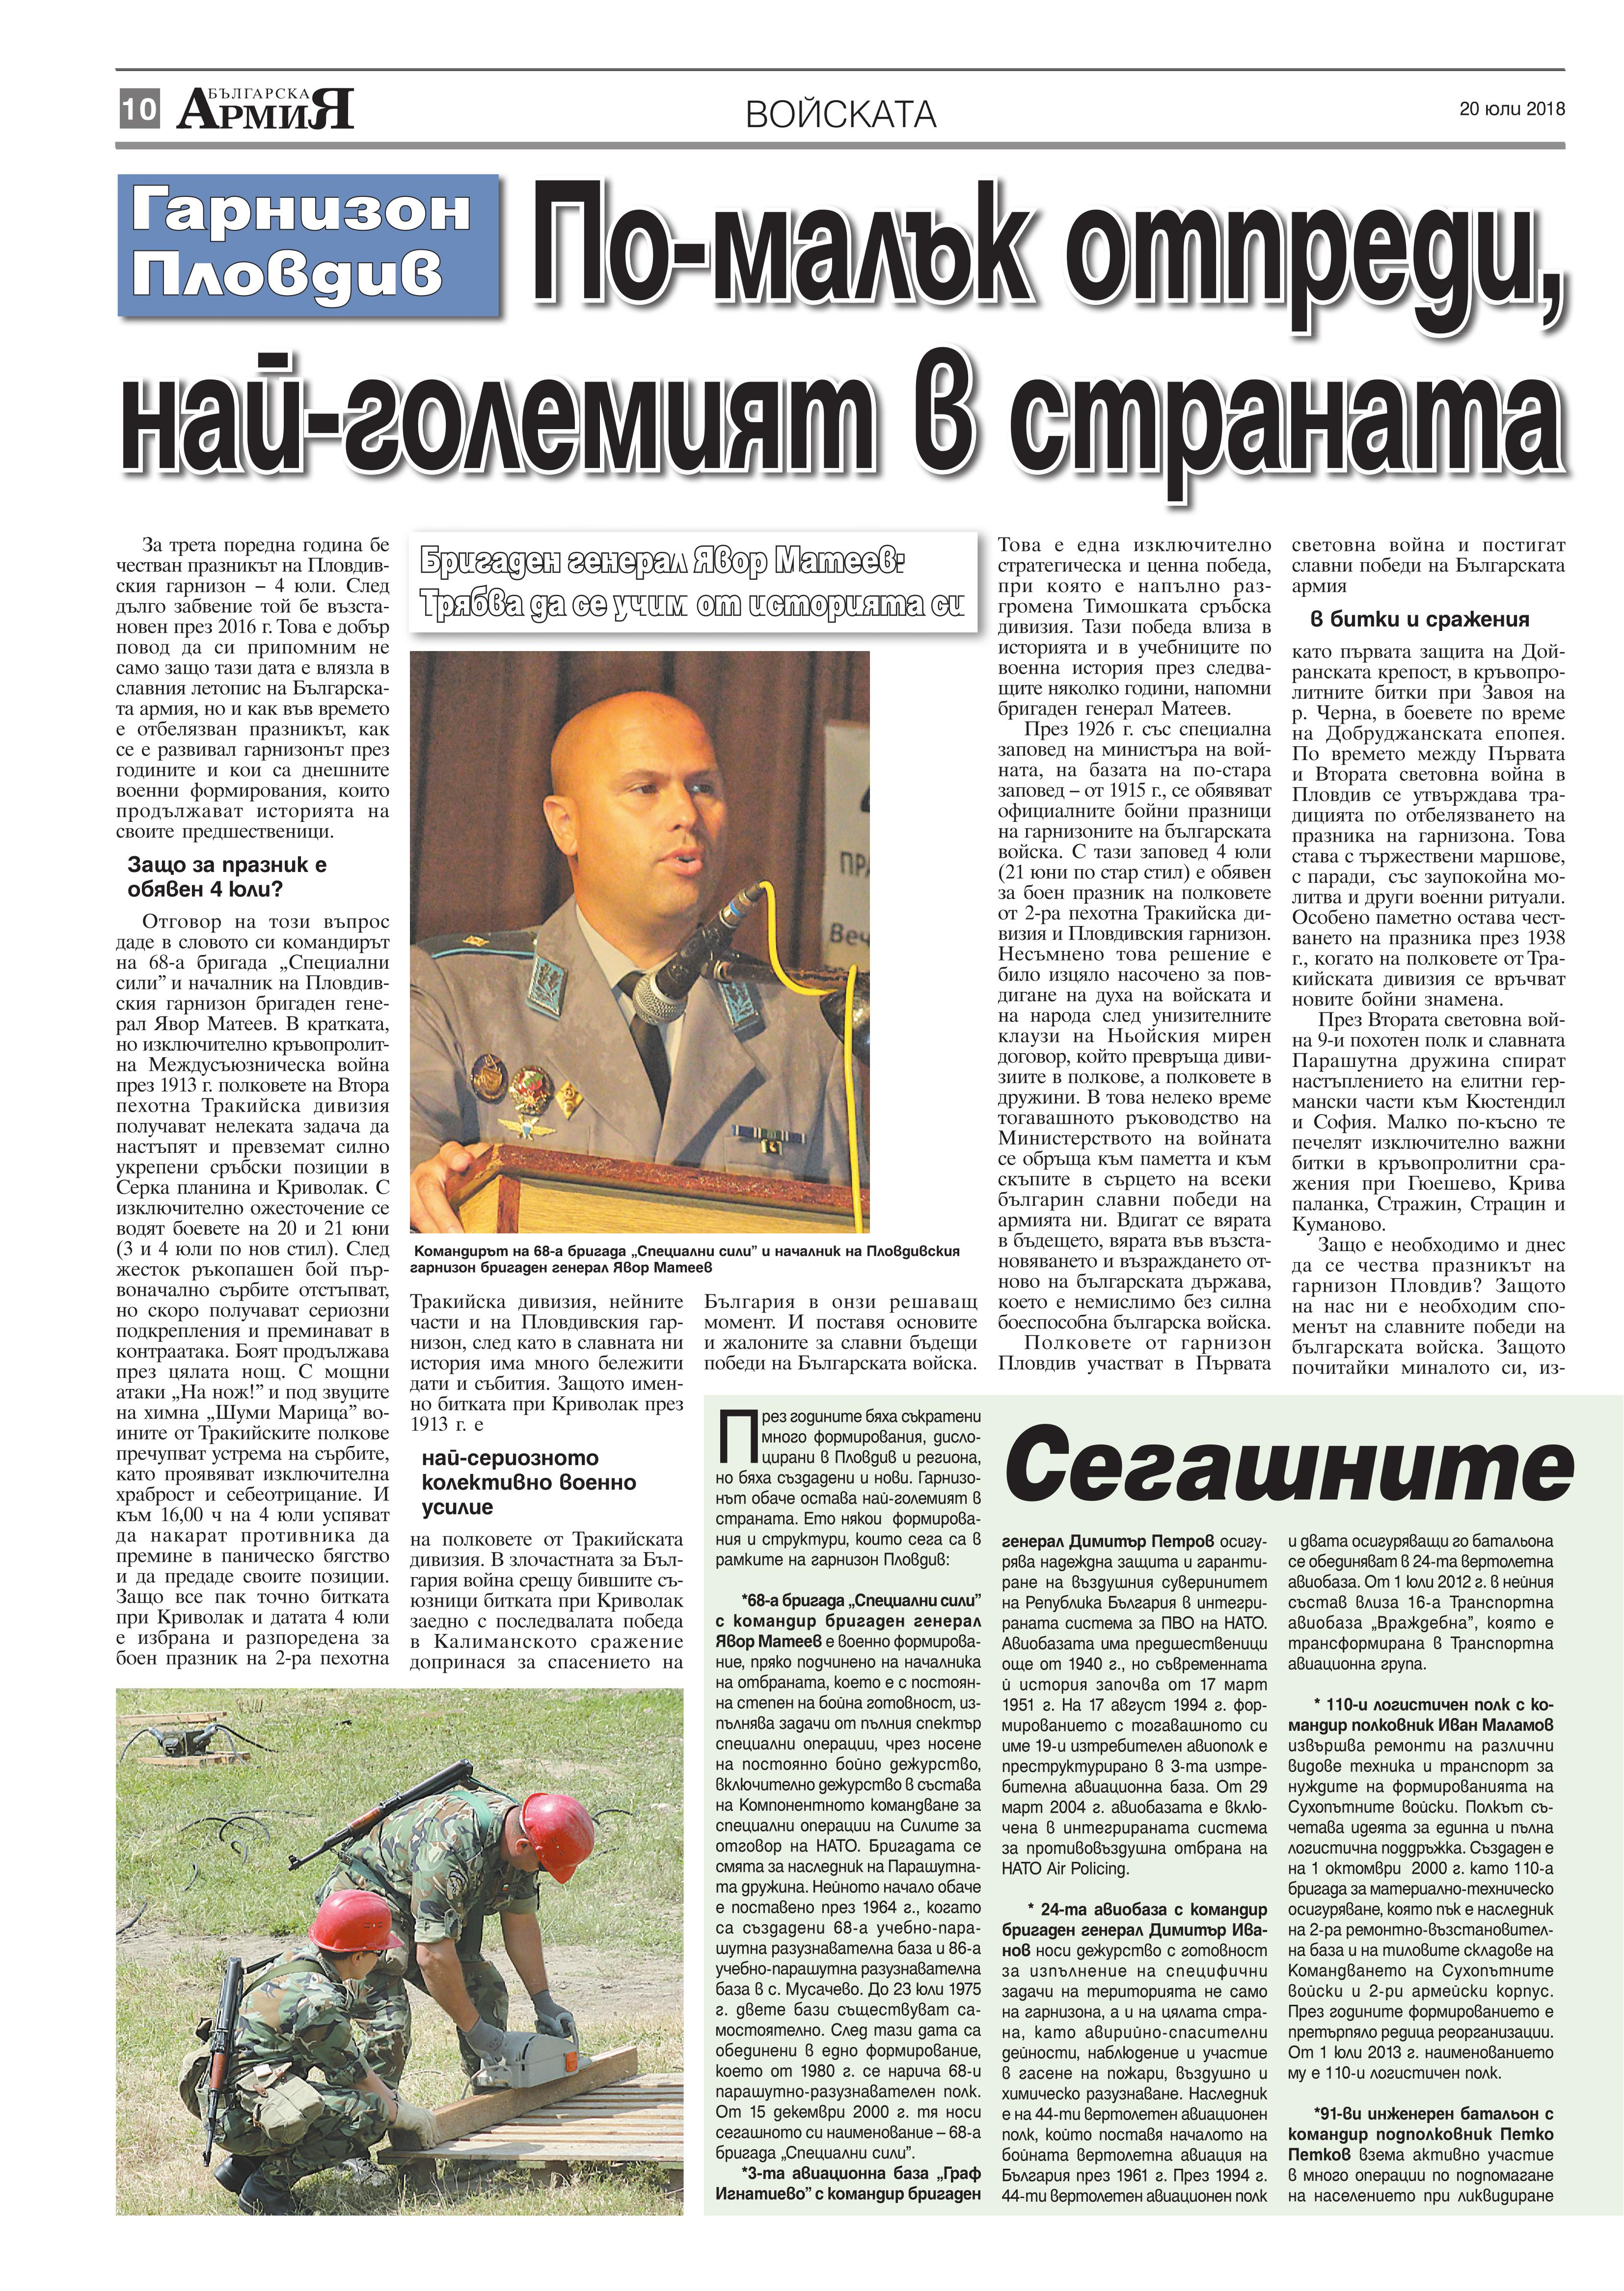 https://armymedia.bg/wp-content/uploads/2015/06/10.page1_-59.jpg